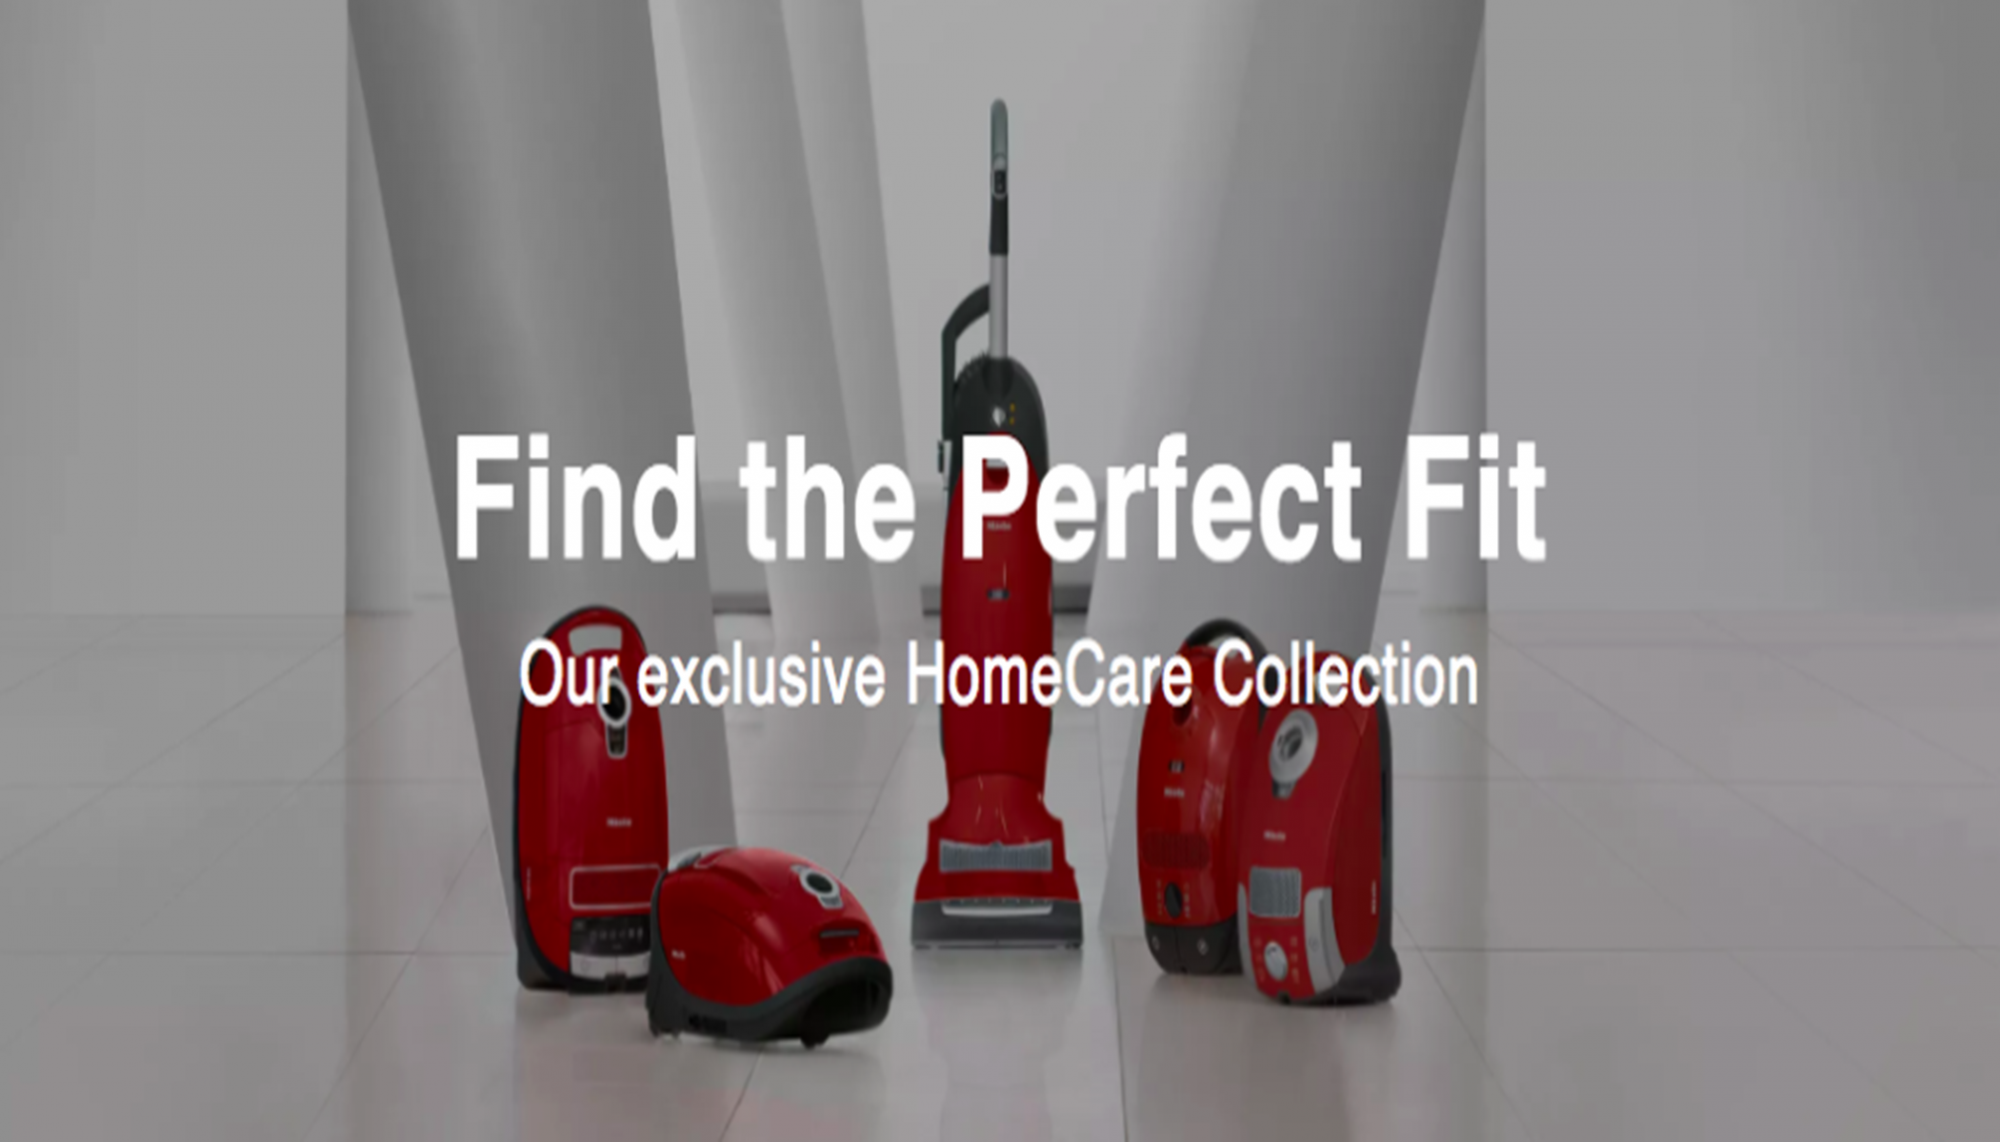 HomeCare Collection: The best vacuum in the industry deserves the best warranty in the industry.  5-year Bumper to Bumper, 10-year Motor